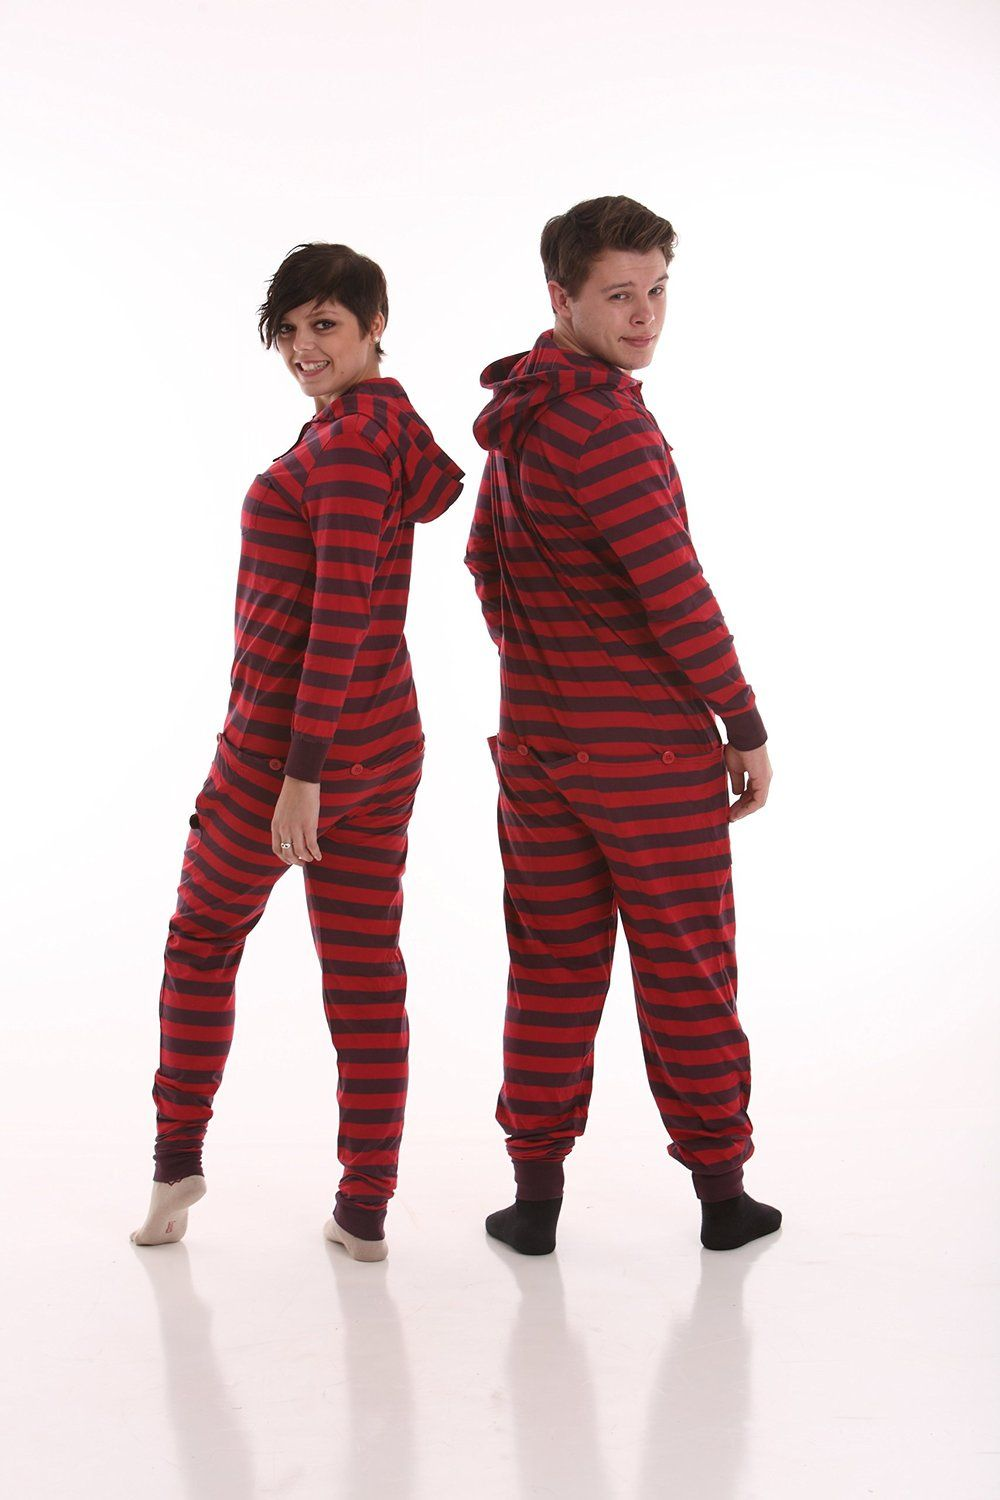 cc4998549543 Our one piece full body pajamas come in a full adult size range ...